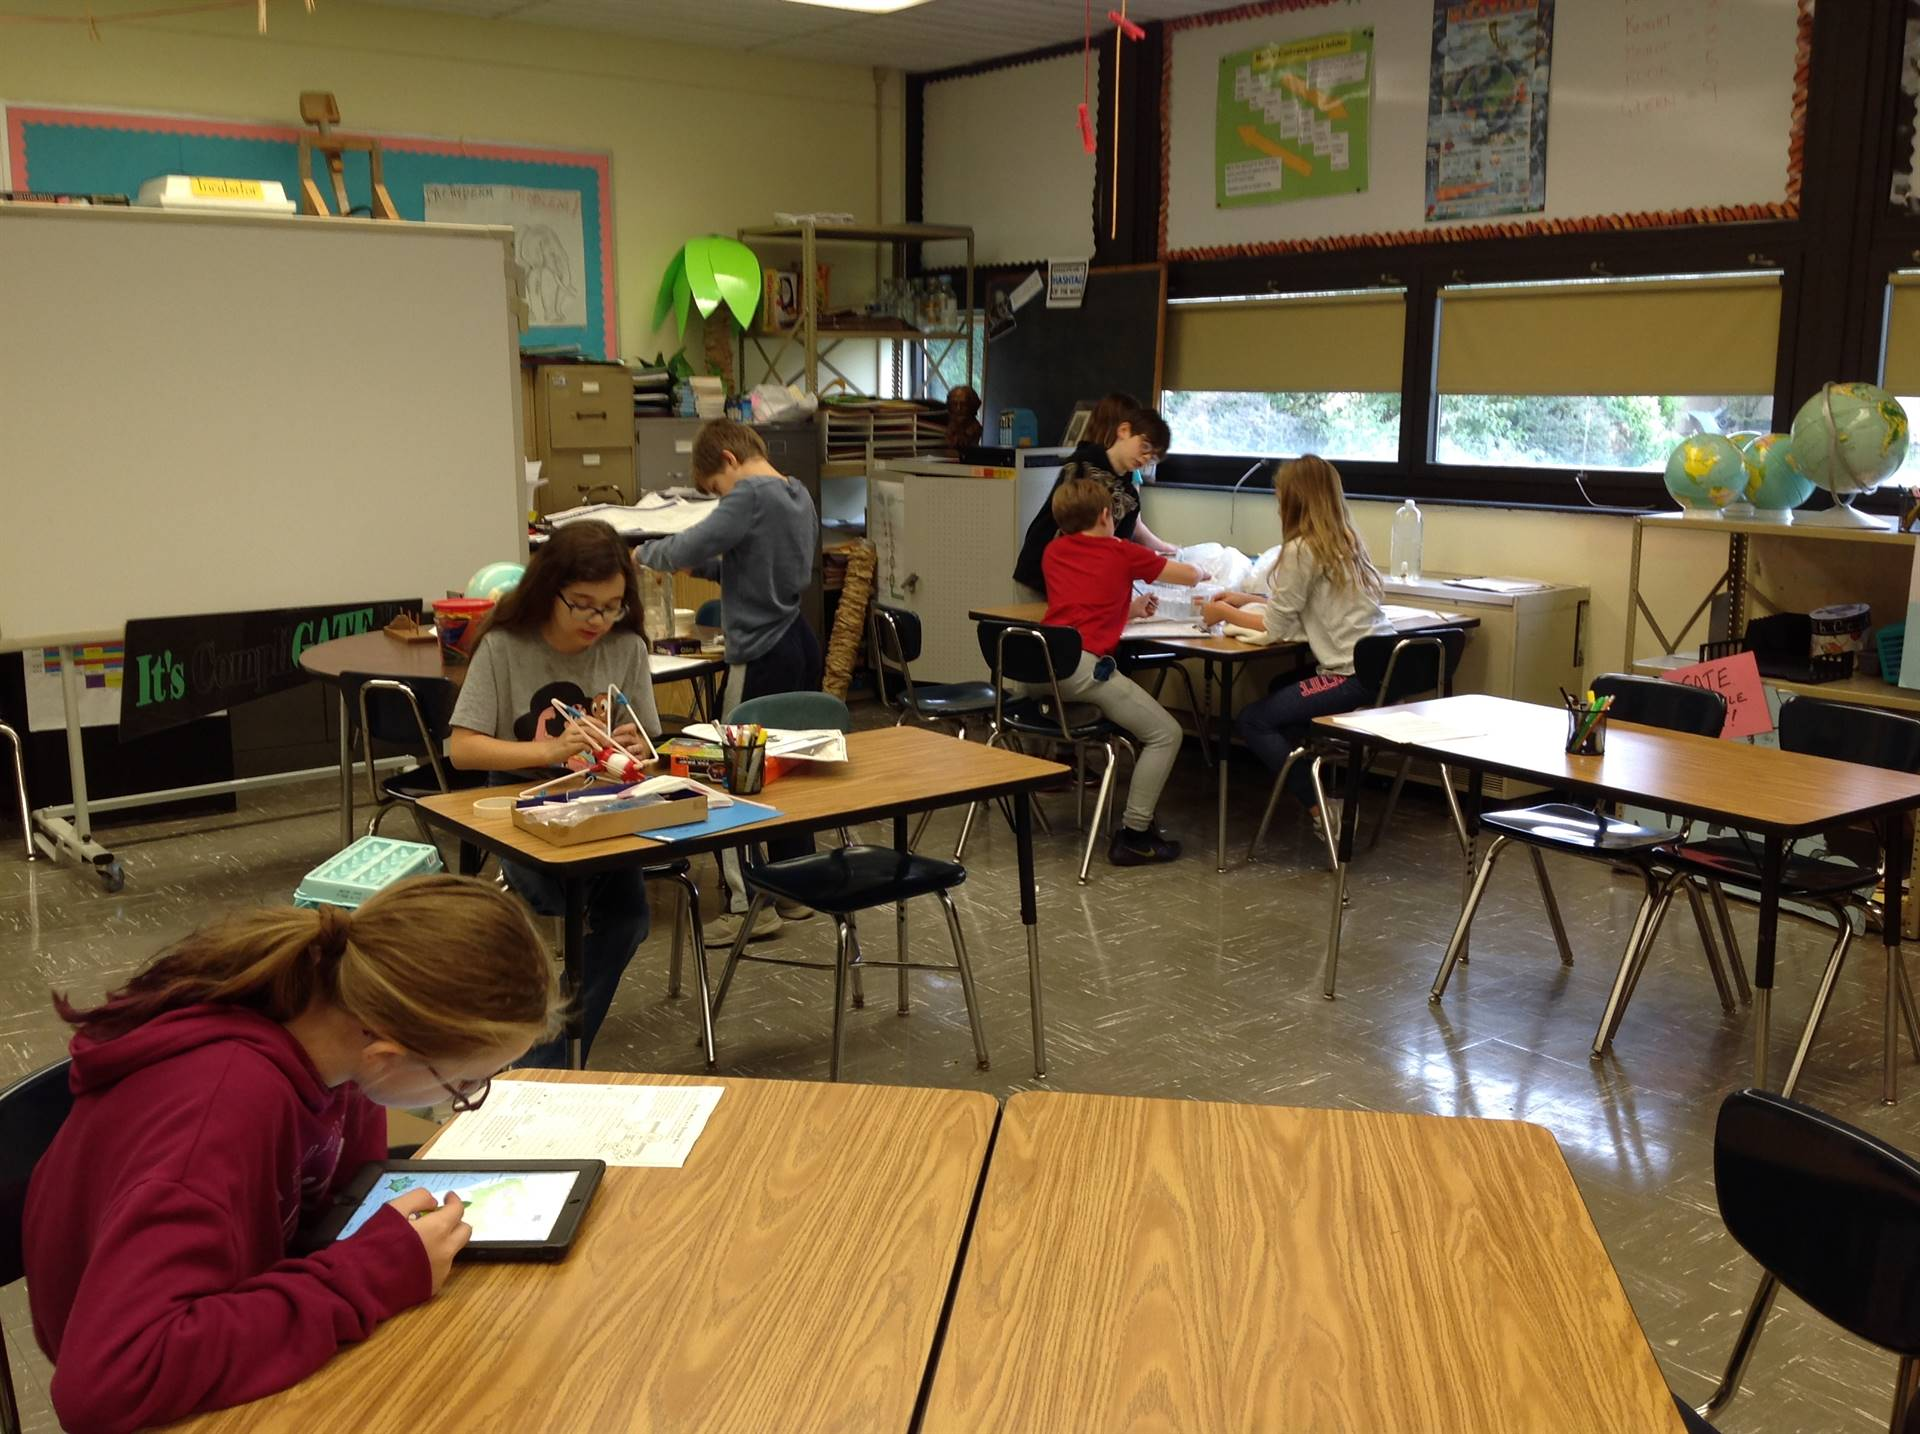 5th Graders Working on Different Project-Based Learning Tasks